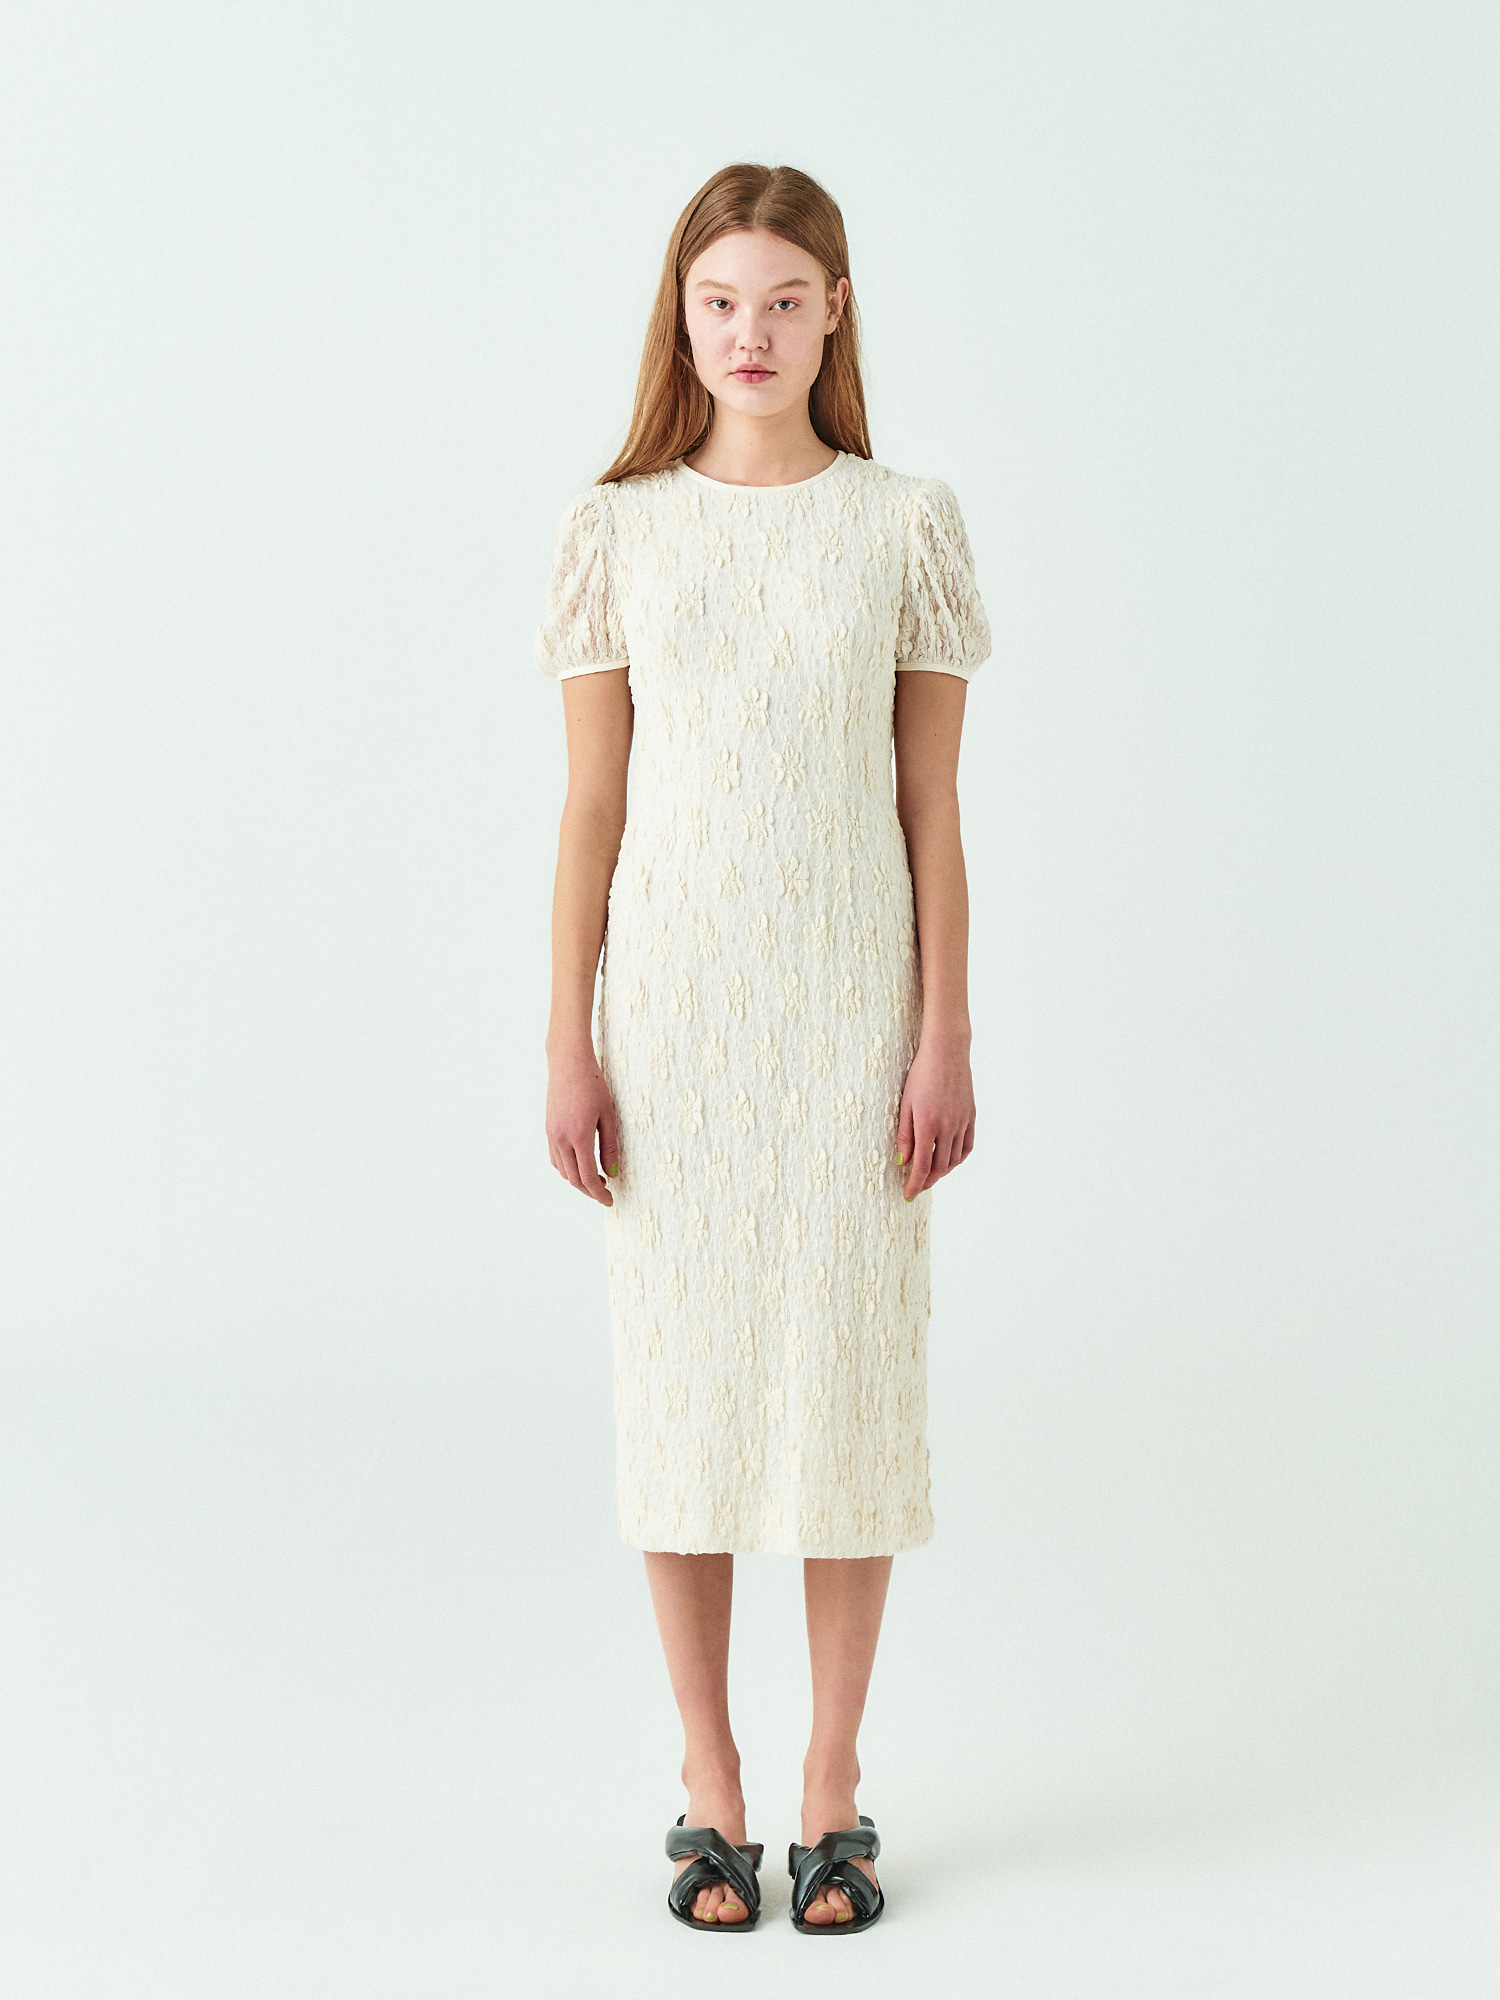 Lace Puff Line Dress in Cream